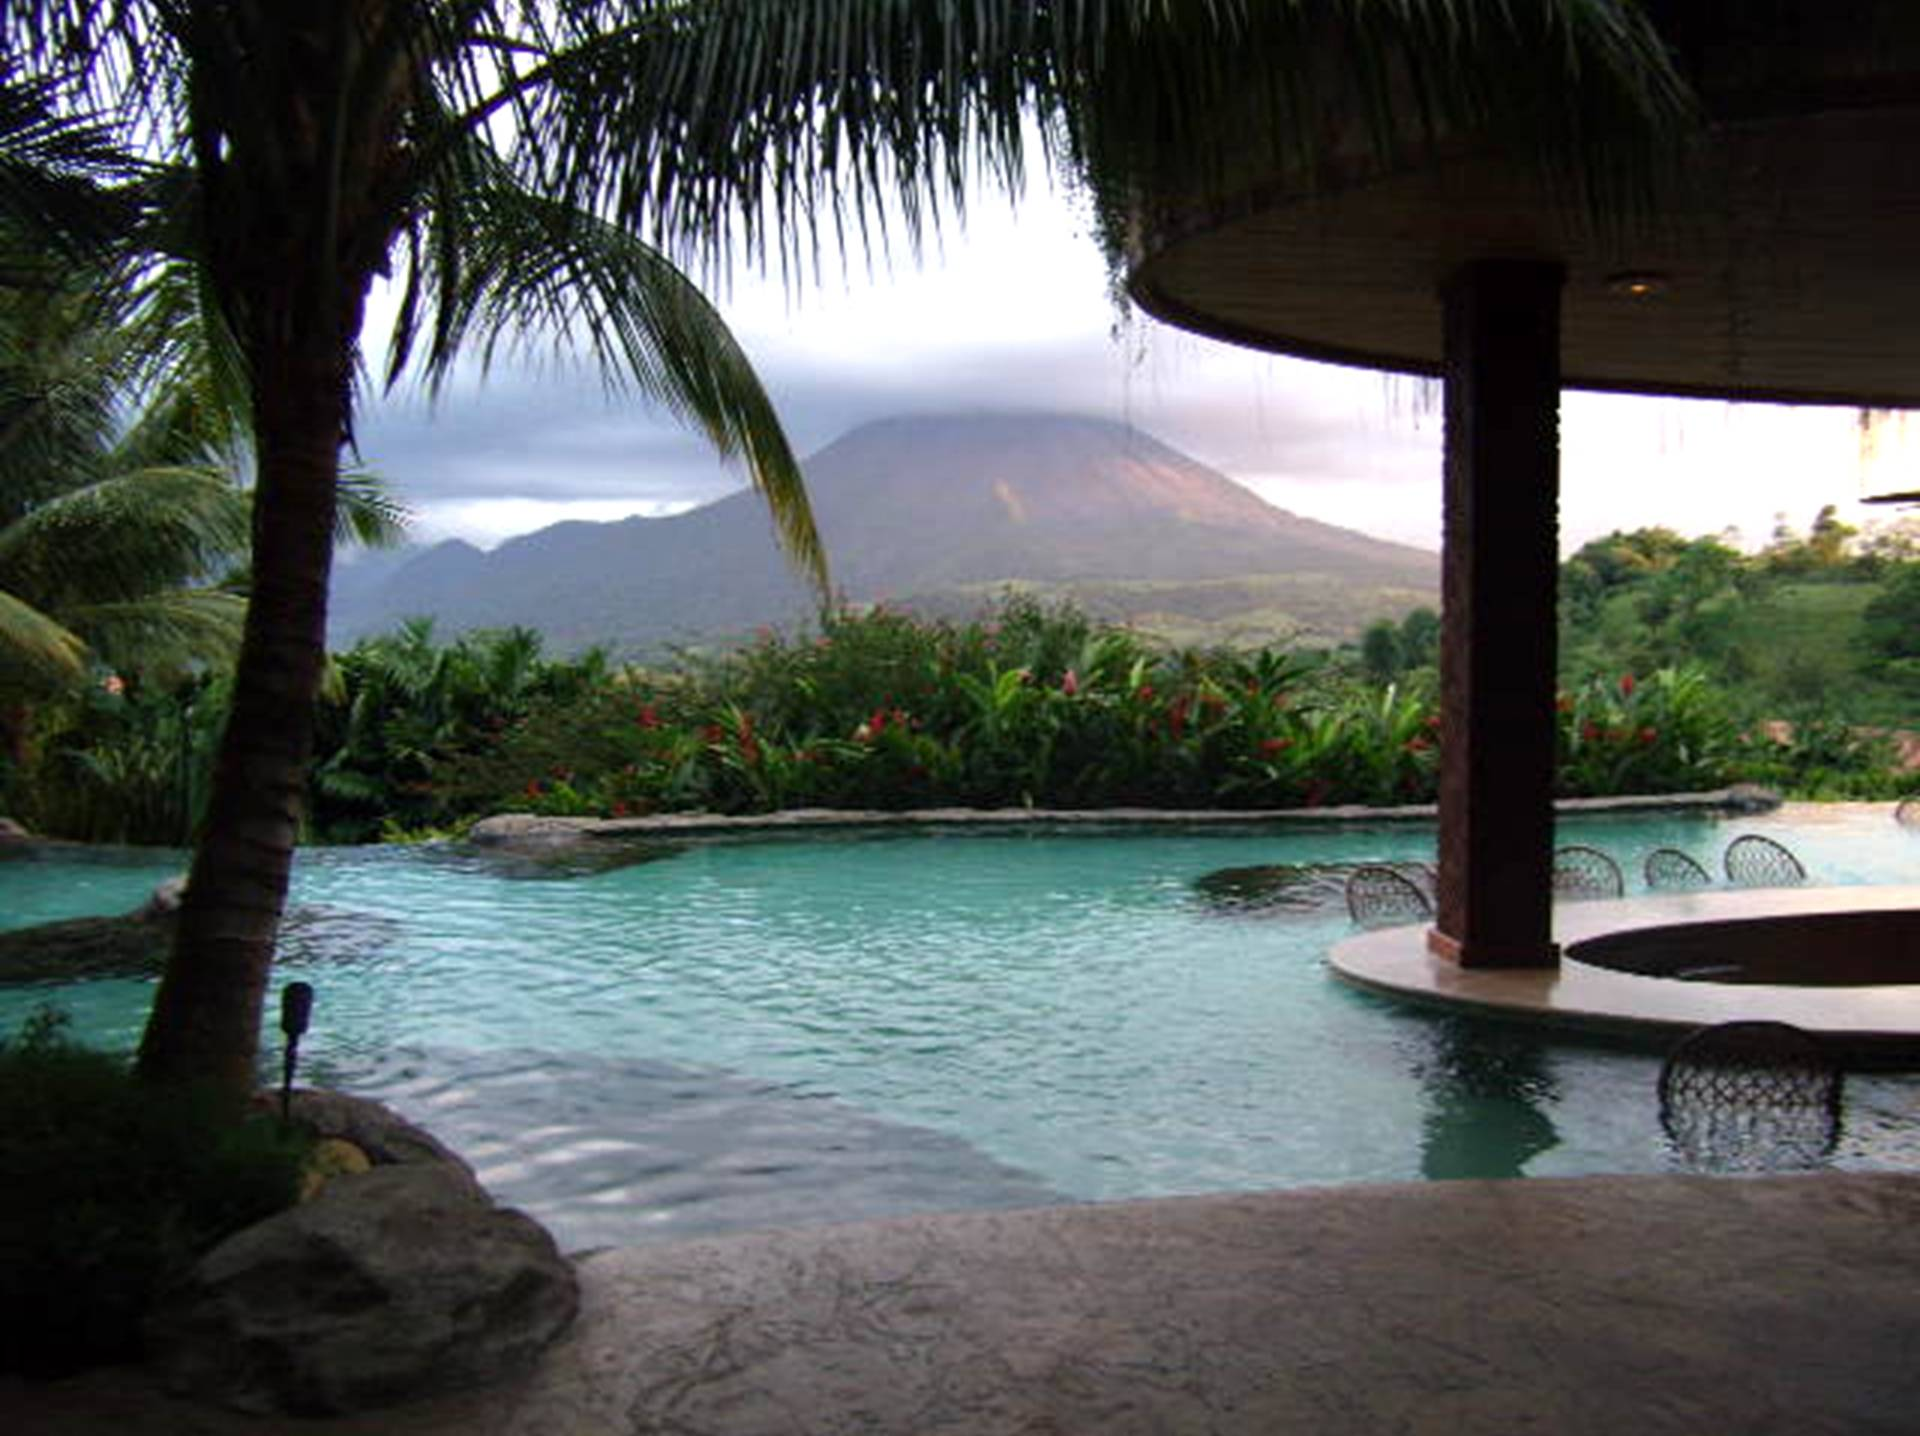 The Best La Fortuna Hot Springs: Baldi, Ecotermales, Tabacon, Or The Springs Resort?